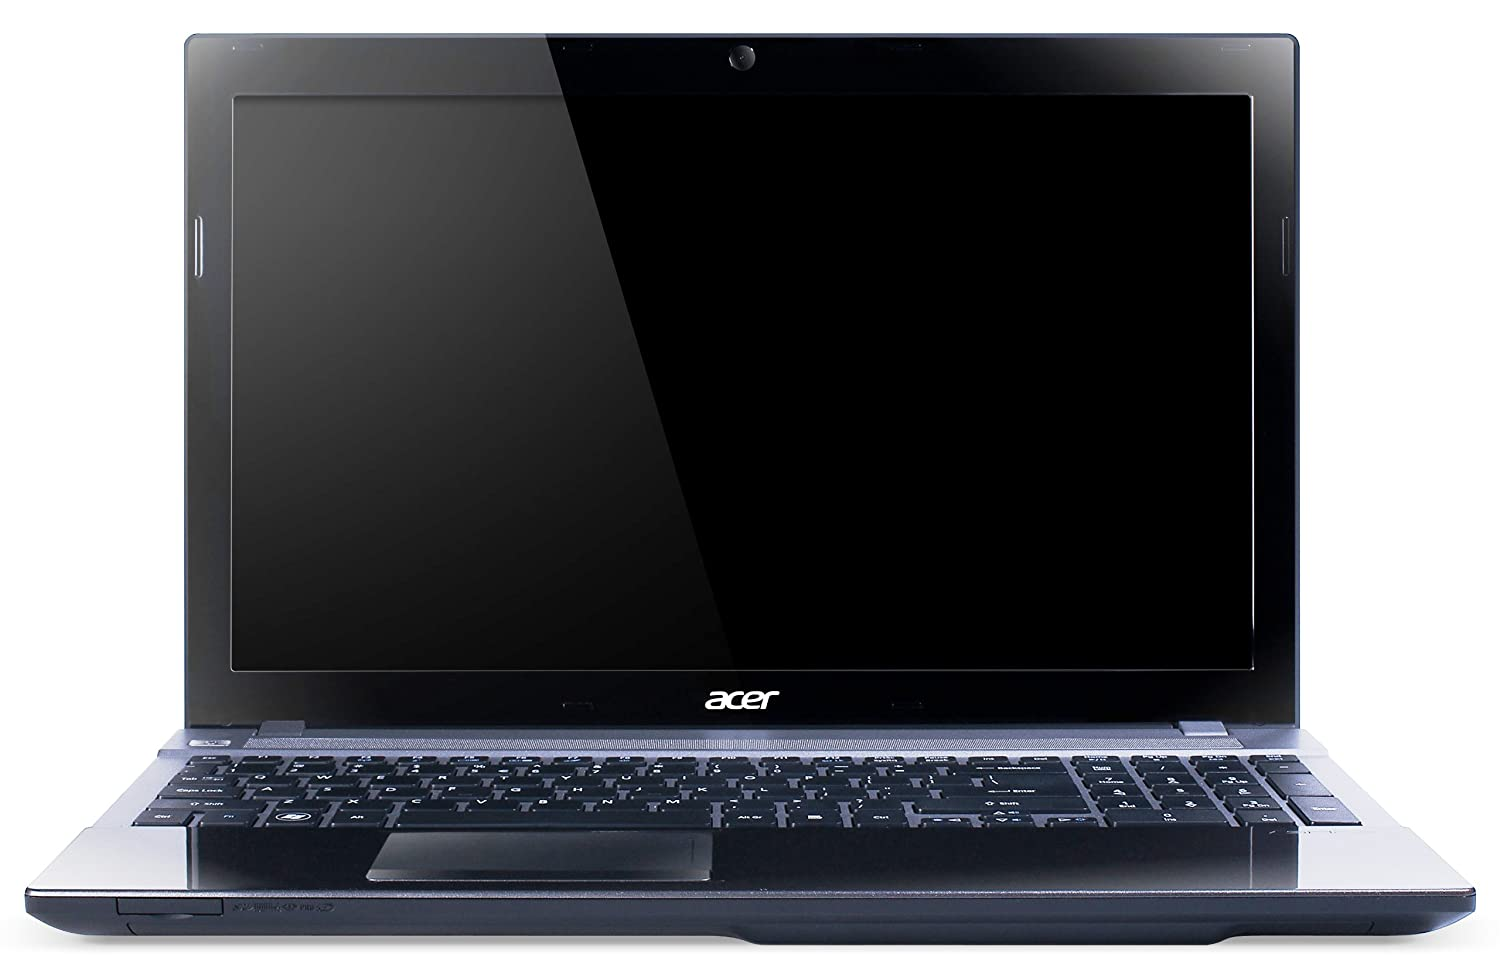 ACER ASPIRE V3-531 NVIDIA GRAPHICS DRIVERS FOR WINDOWS MAC